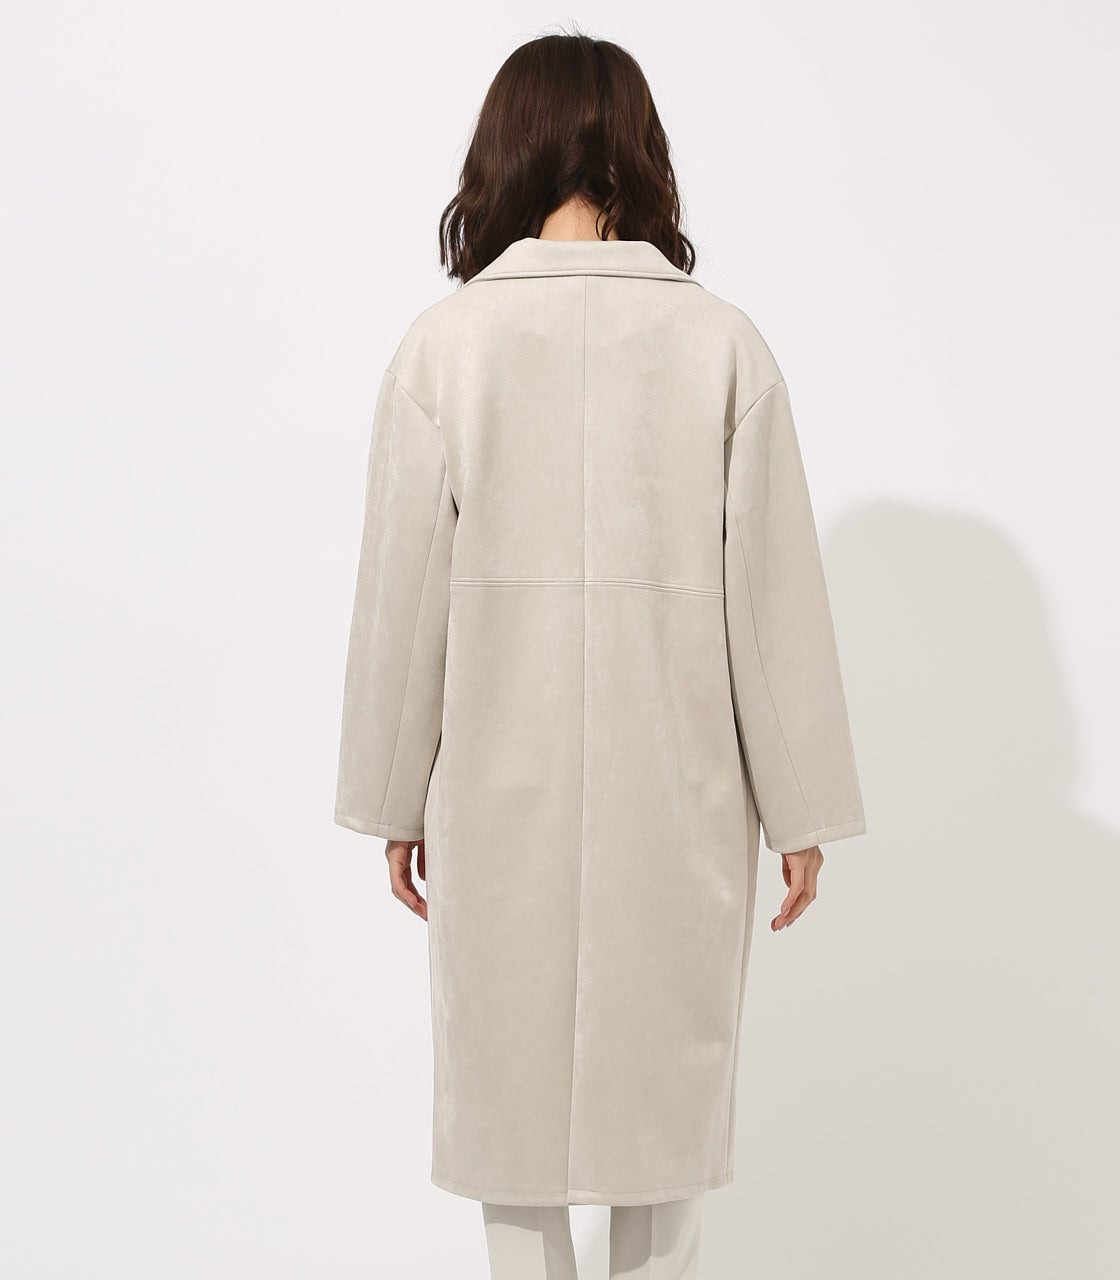 FAKE SUEDE CHESTER COAT 詳細画像 L/GRY 7